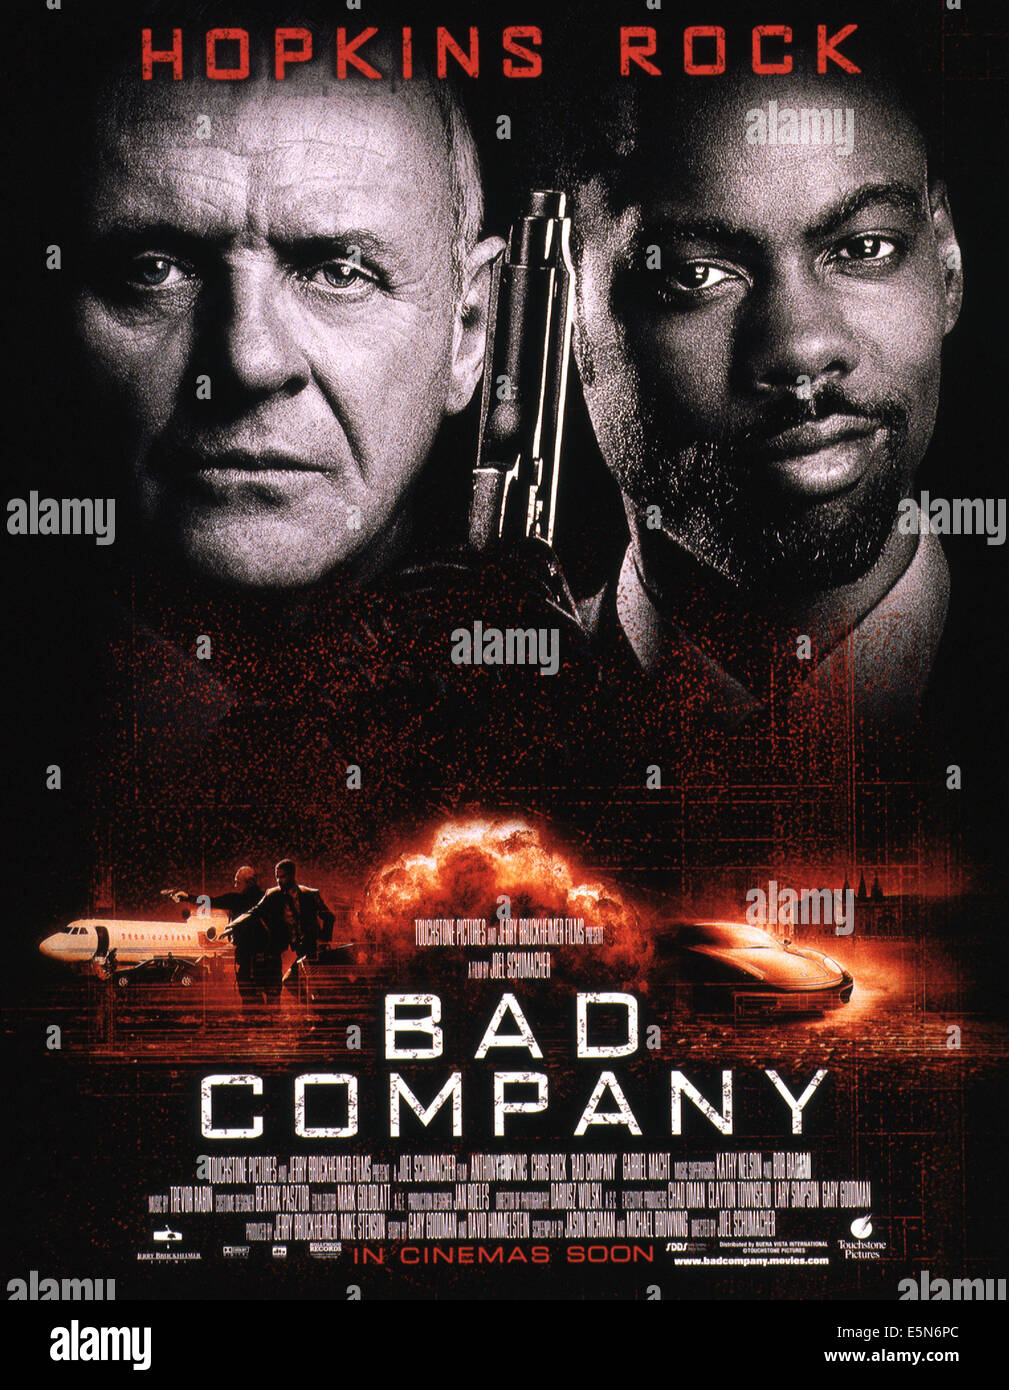 BAD COMPANY Poster From Left Anthony Hopkins Chris Rock 2002